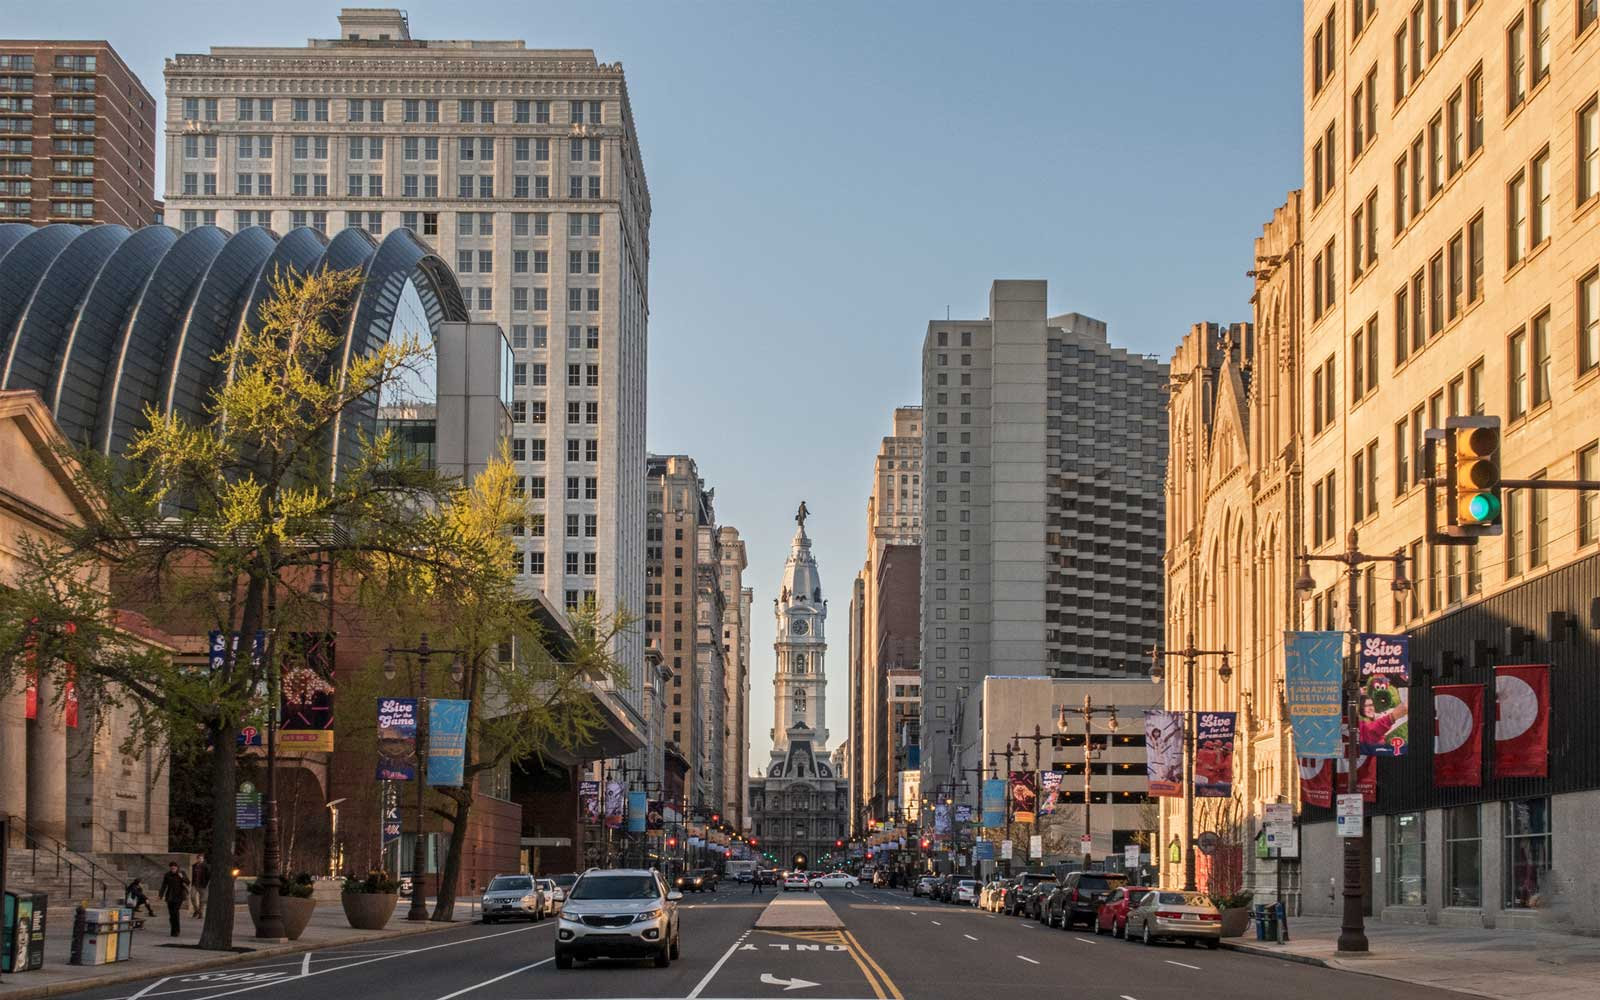 USA, Philadelphia, view to Broad Street and City Hall in the evening